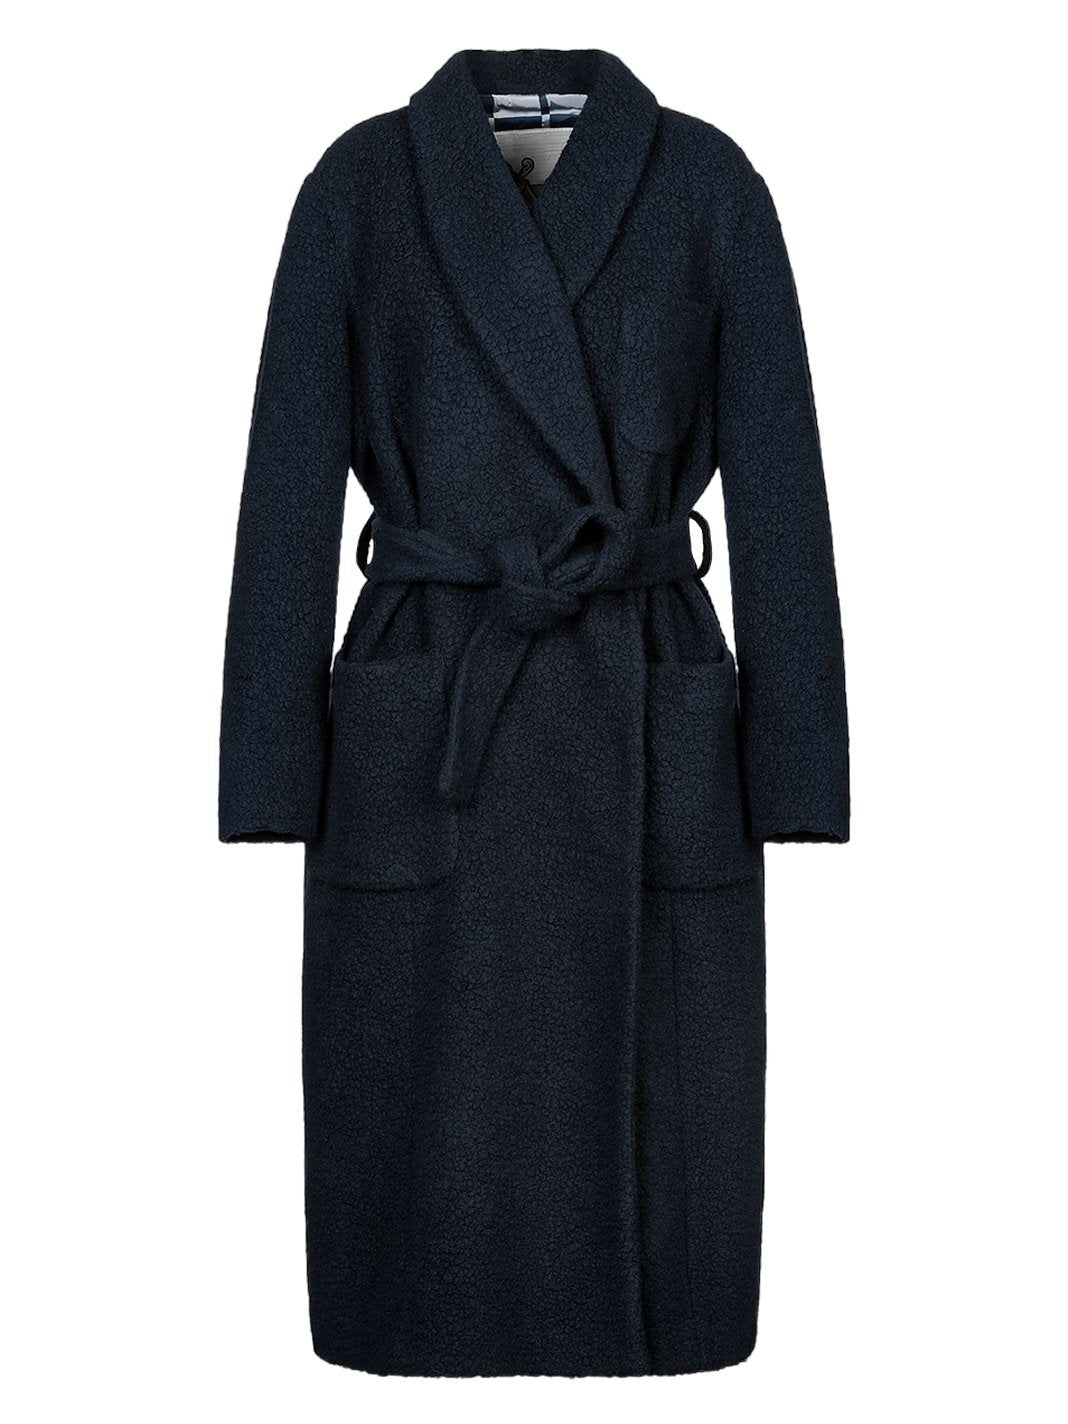 Delphos Wool Coat - The Bobby Boga